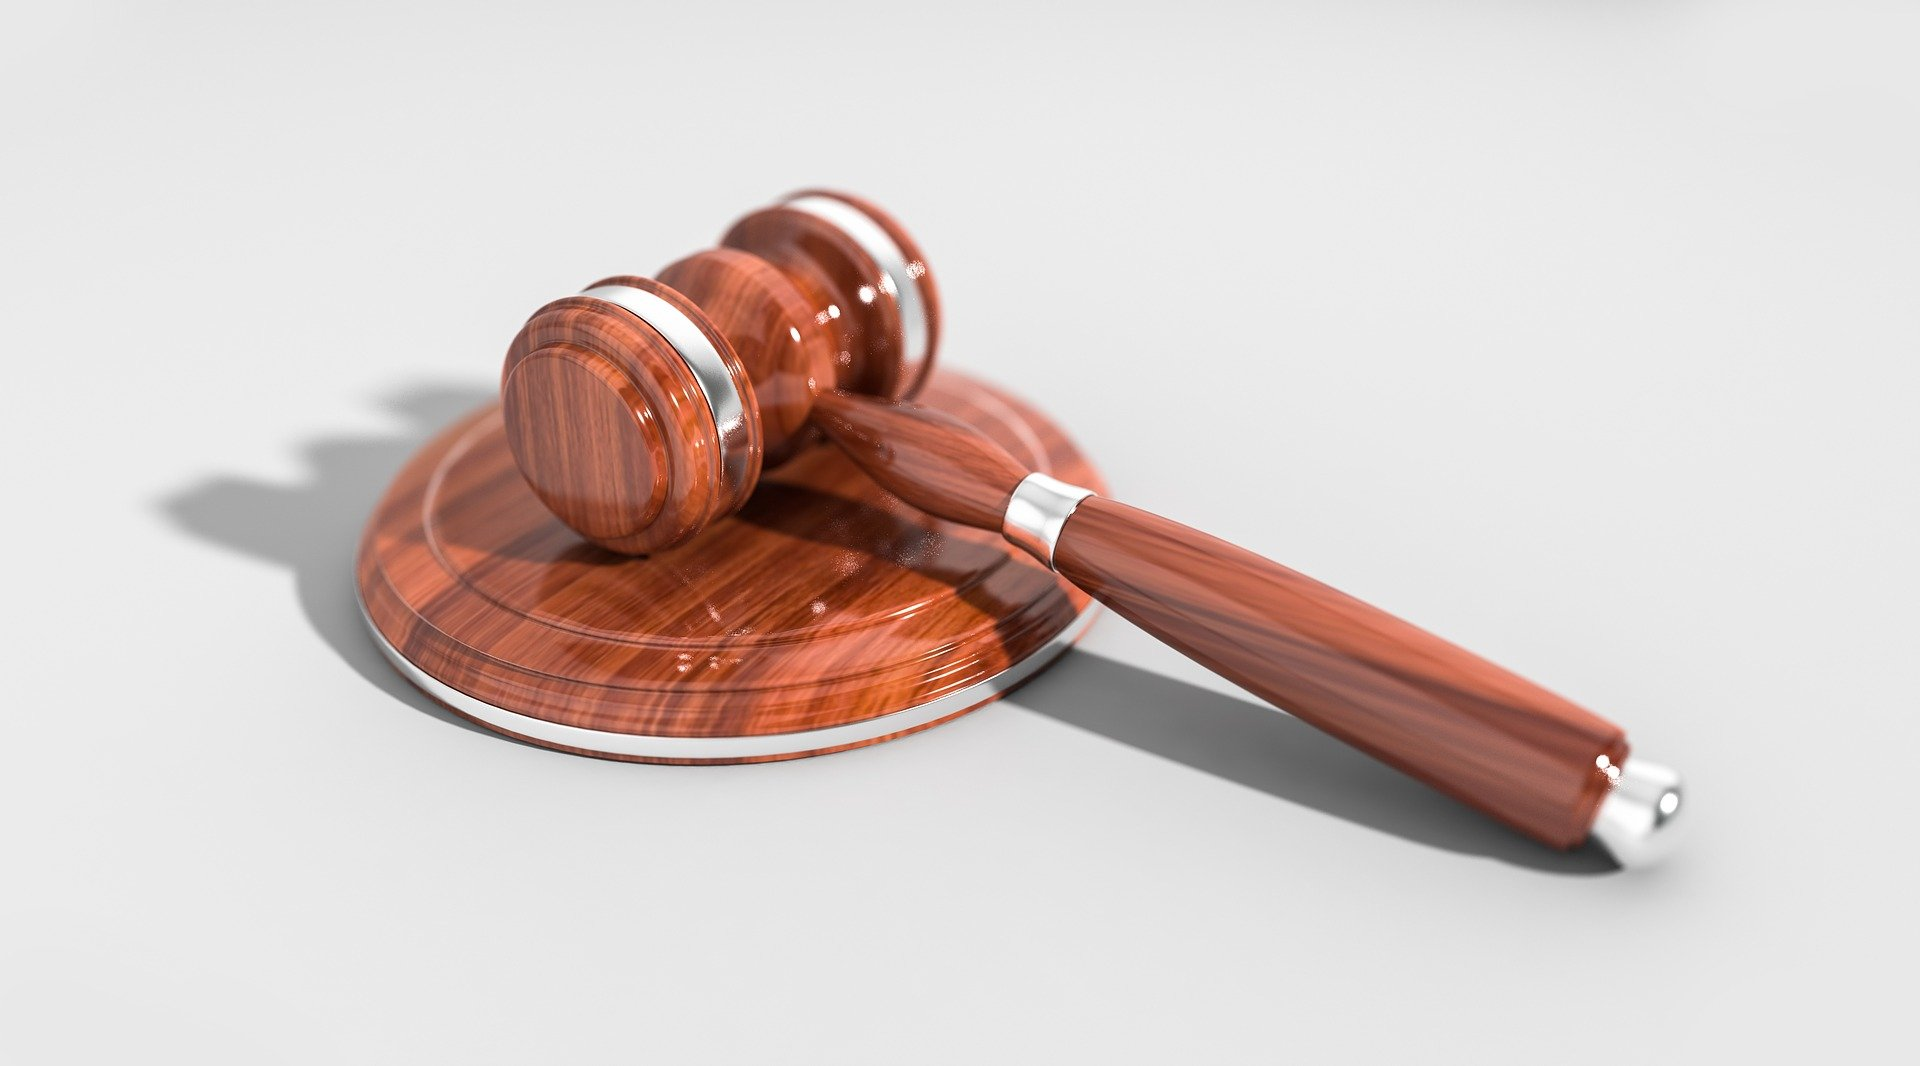 What you need to know about suing in California small claims court